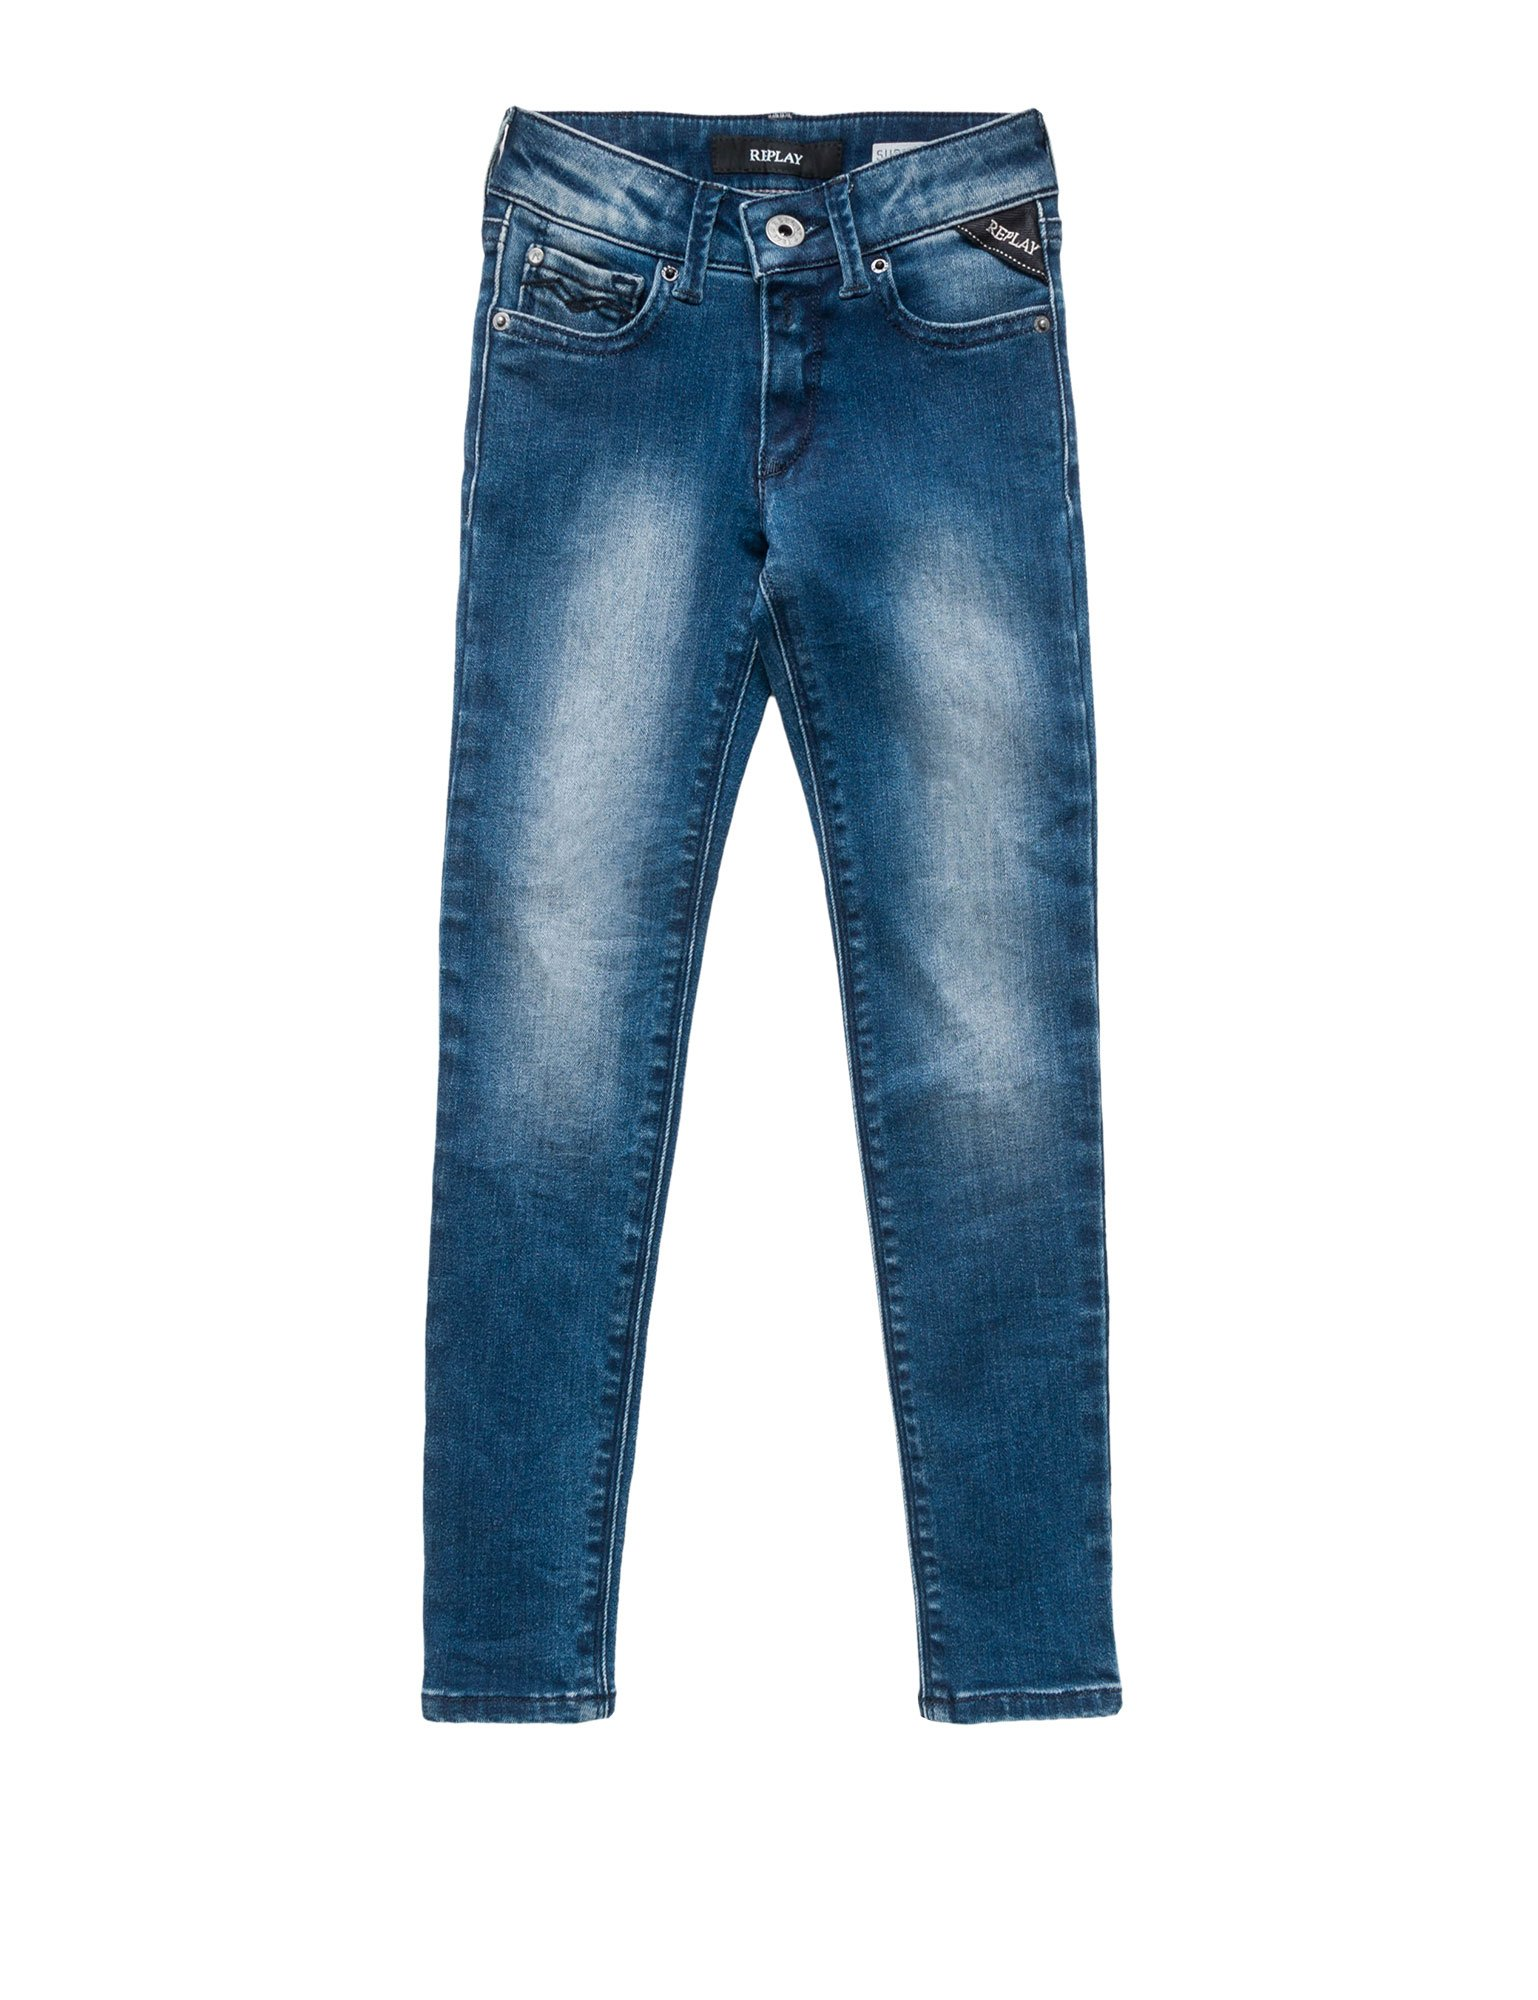 Replay 10,5 Oz Power Stretch Denim Girl's Pants In Size 6 Years Blue